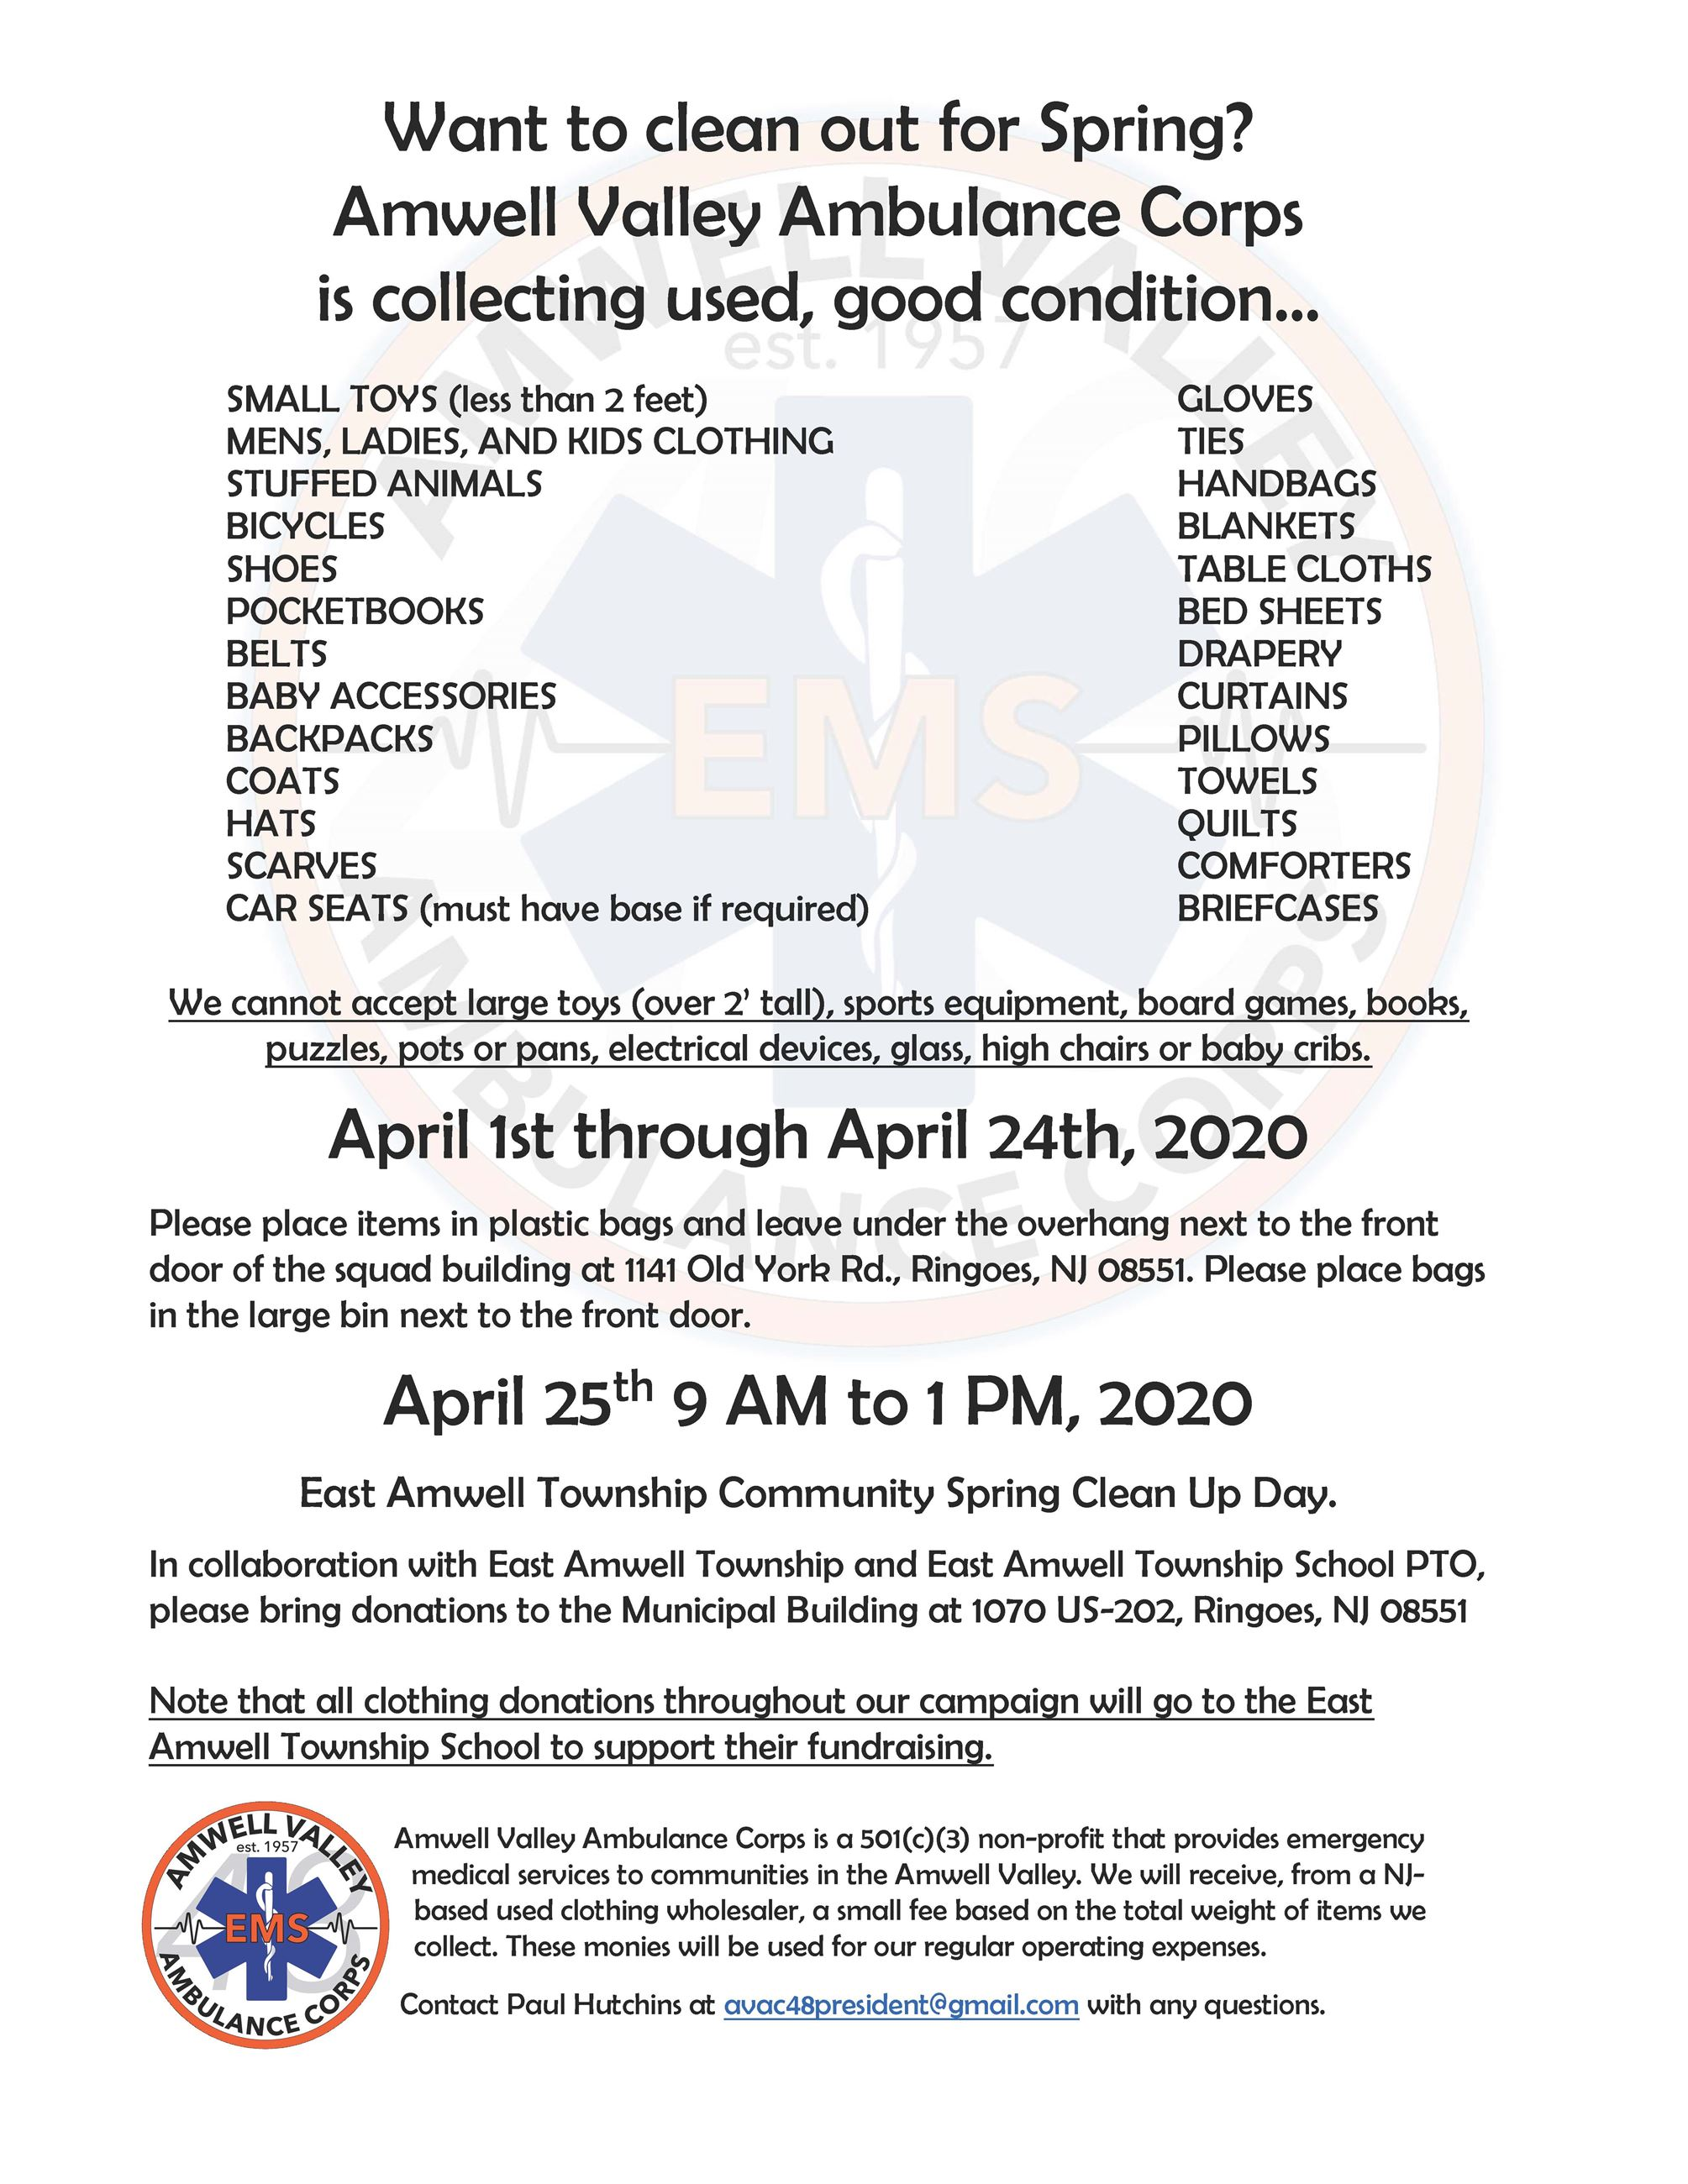 AVAC48 Spring 2020 Clothing Drive Flyer